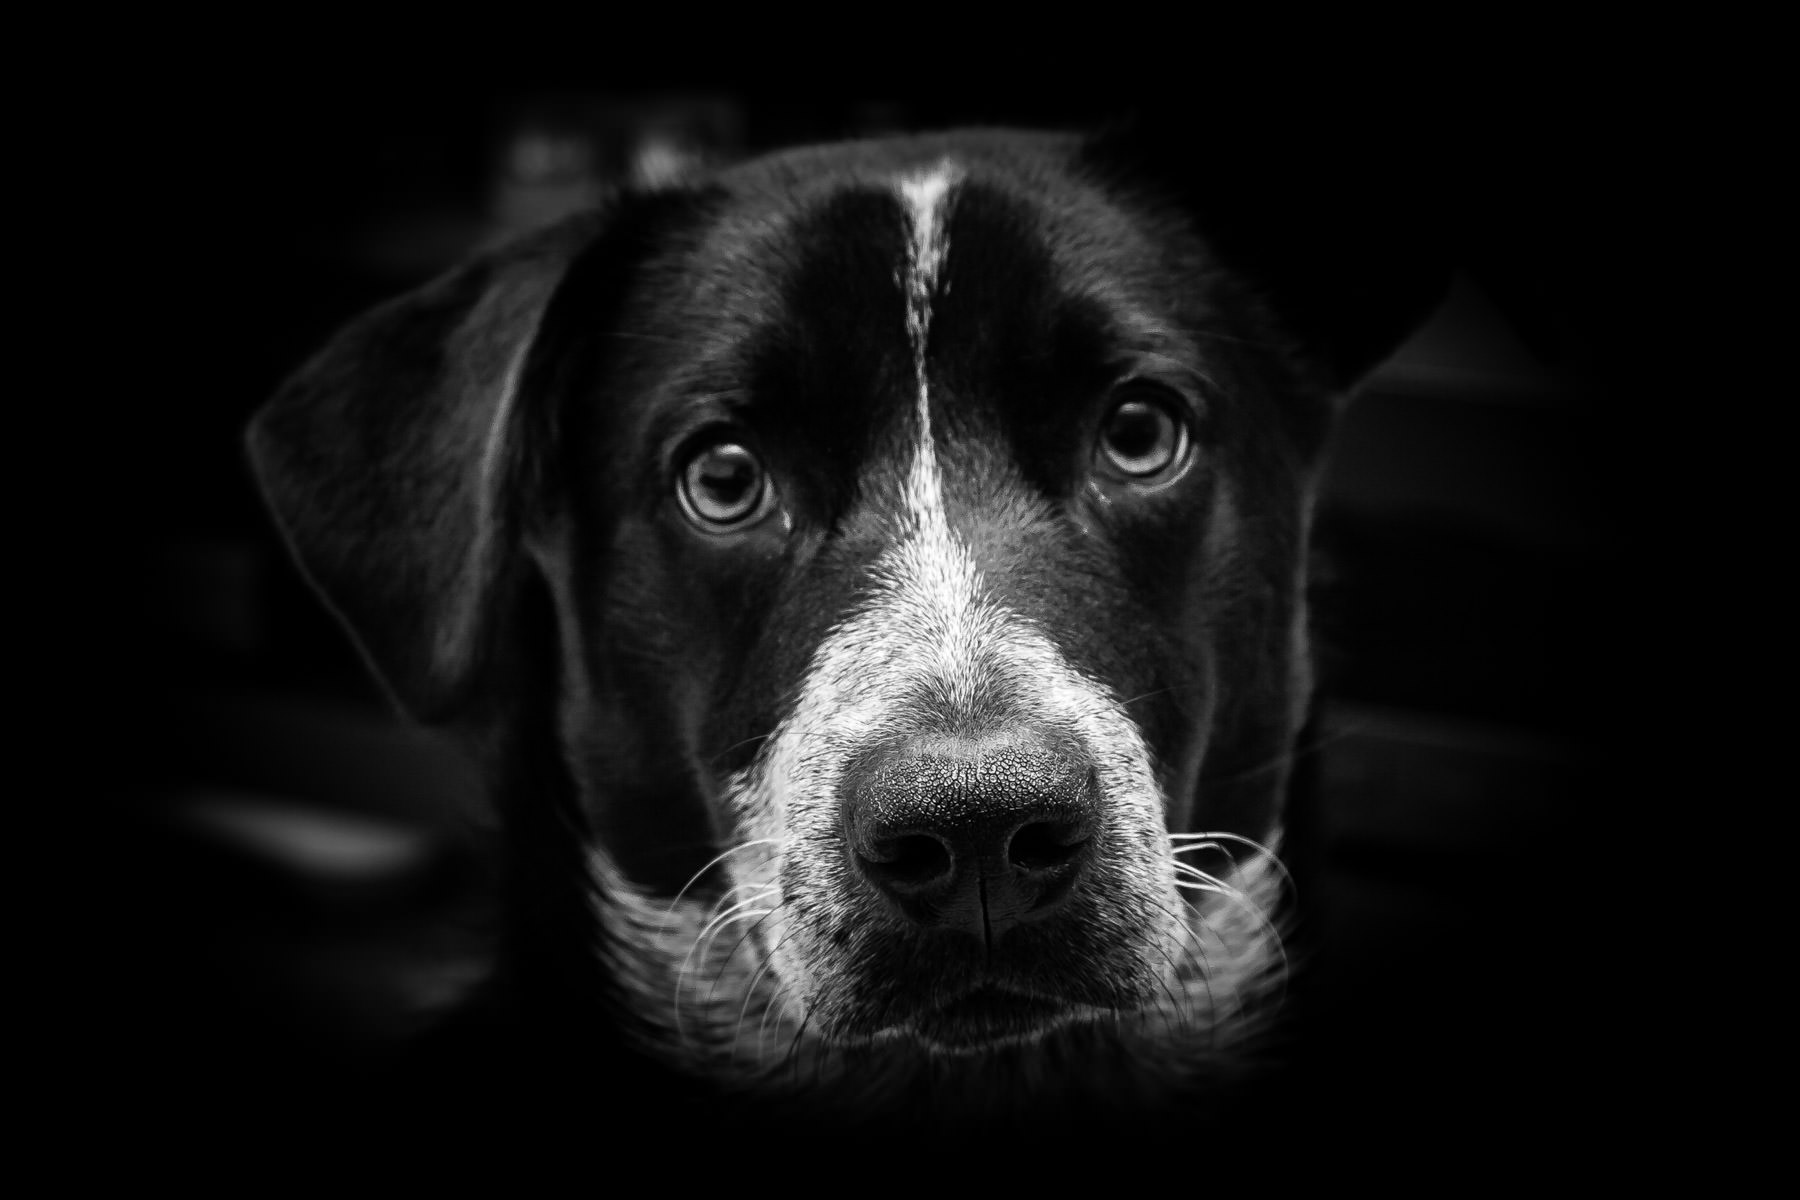 black and white dog nose snout eyes